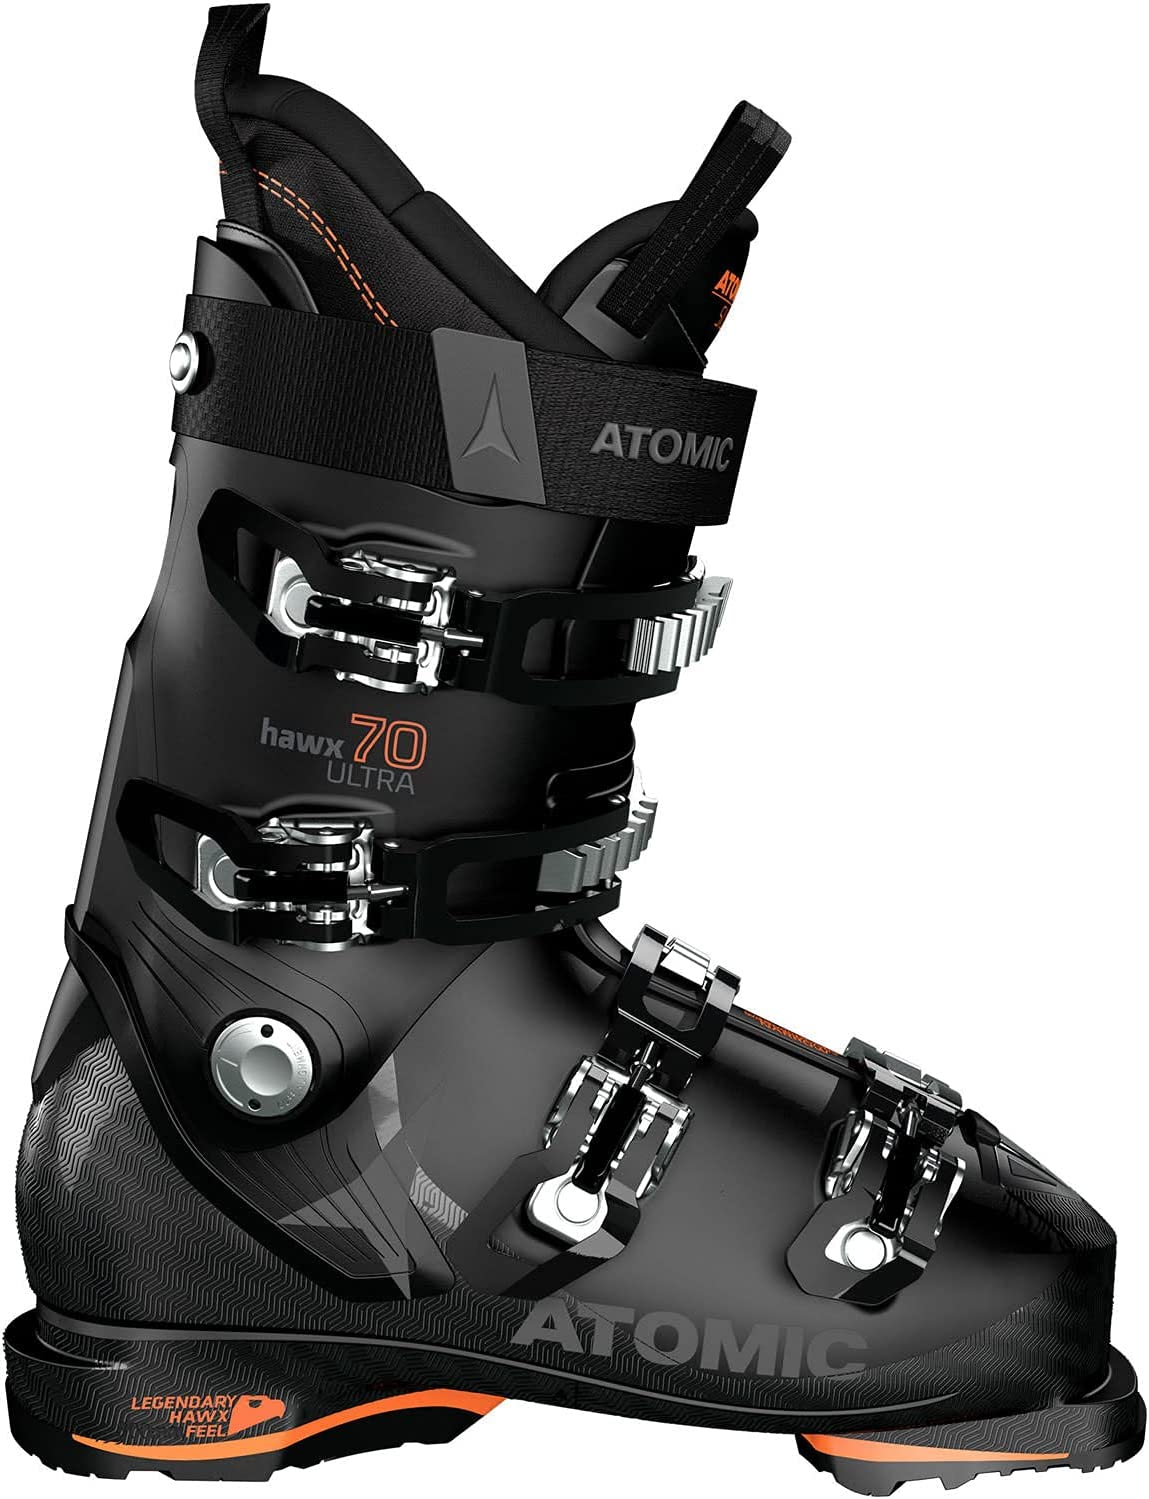 Atomic HAWX Ultra Max 83% OFF 70 Manufacturer regenerated product Boots Ski Womens GW